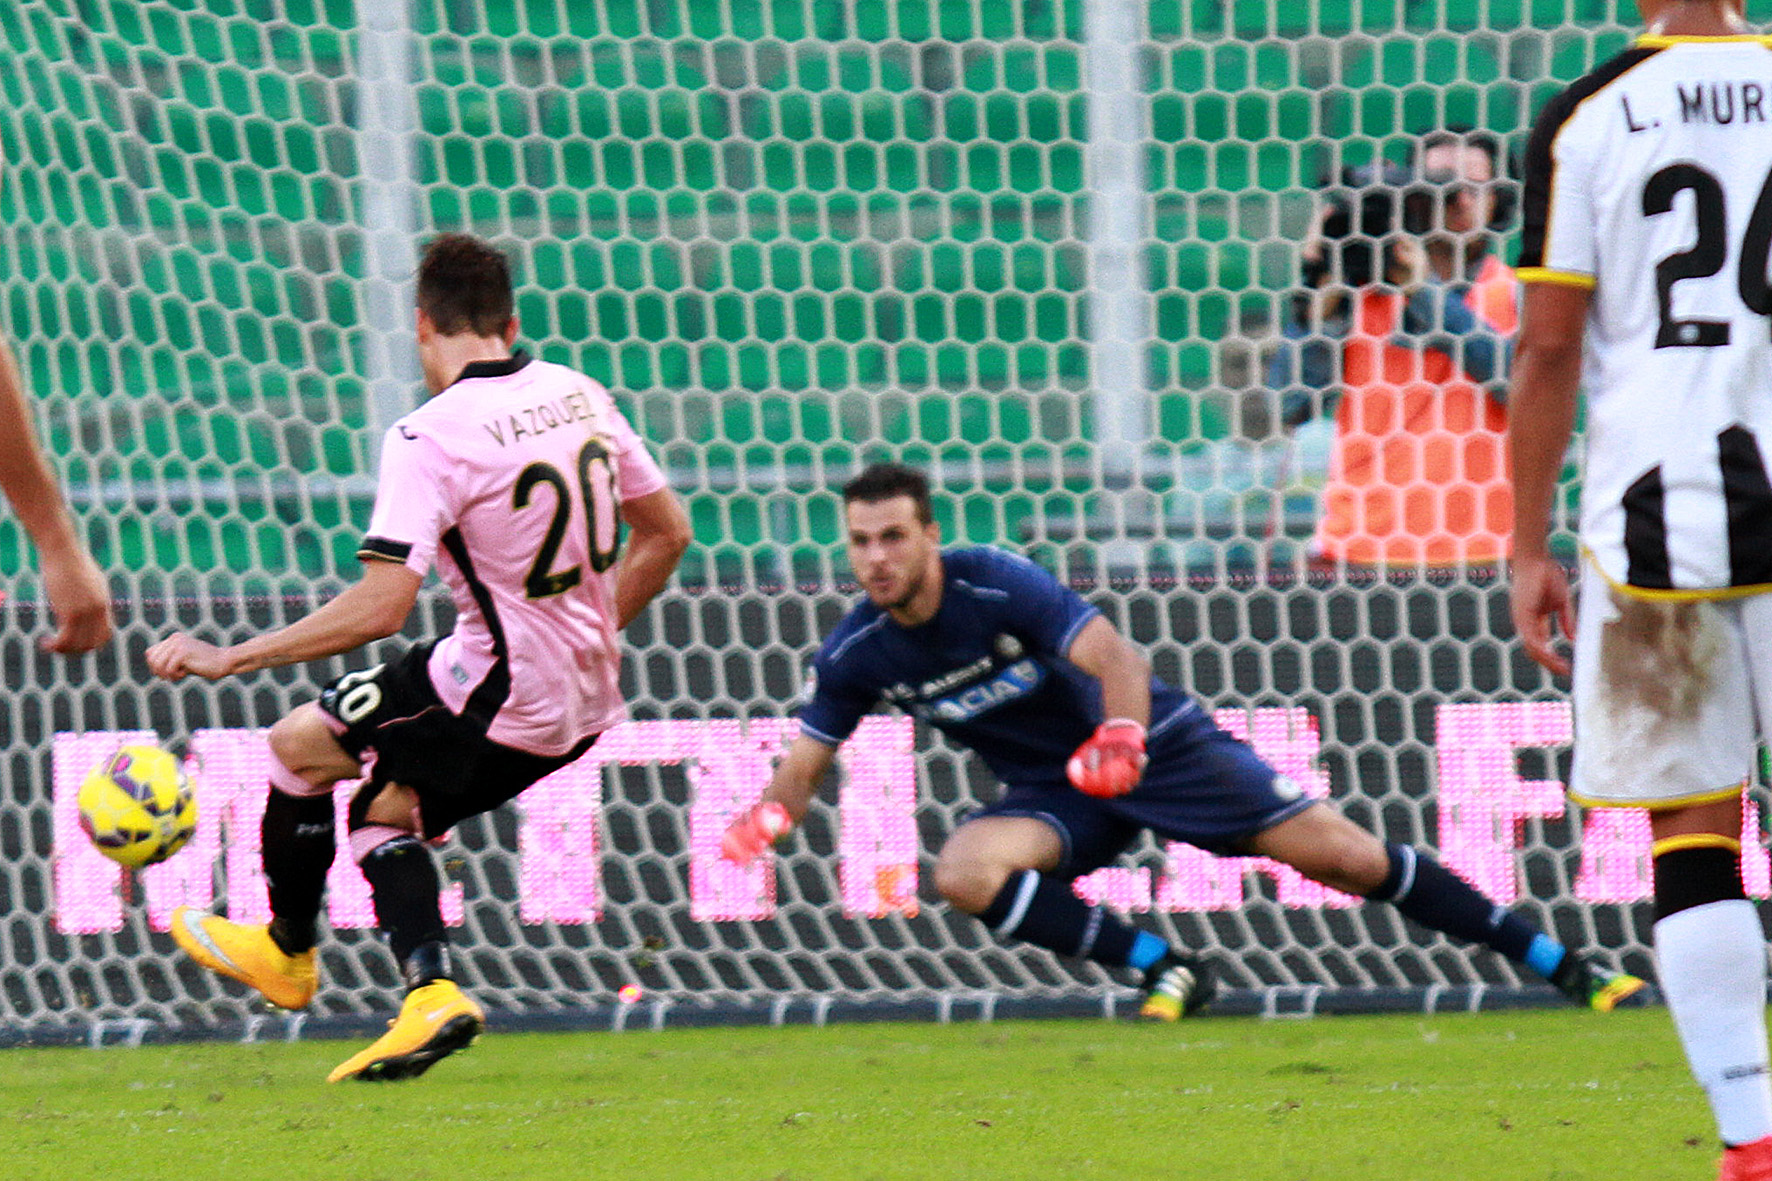 Franco Vazquez in gol